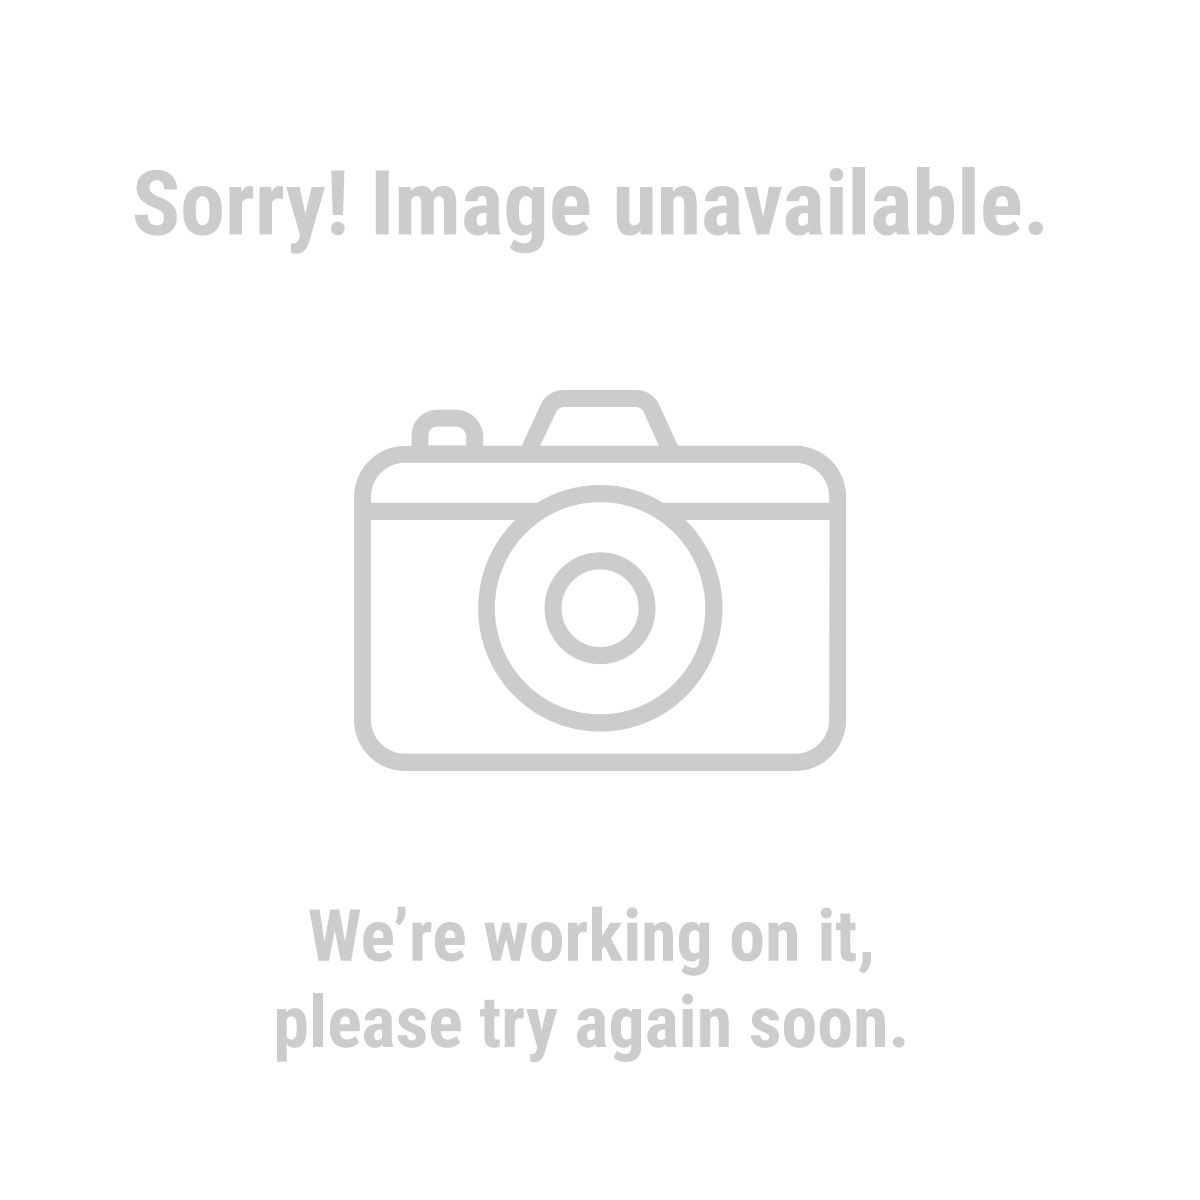 68365 2 Piece Solid Steel Auto Ramp Set